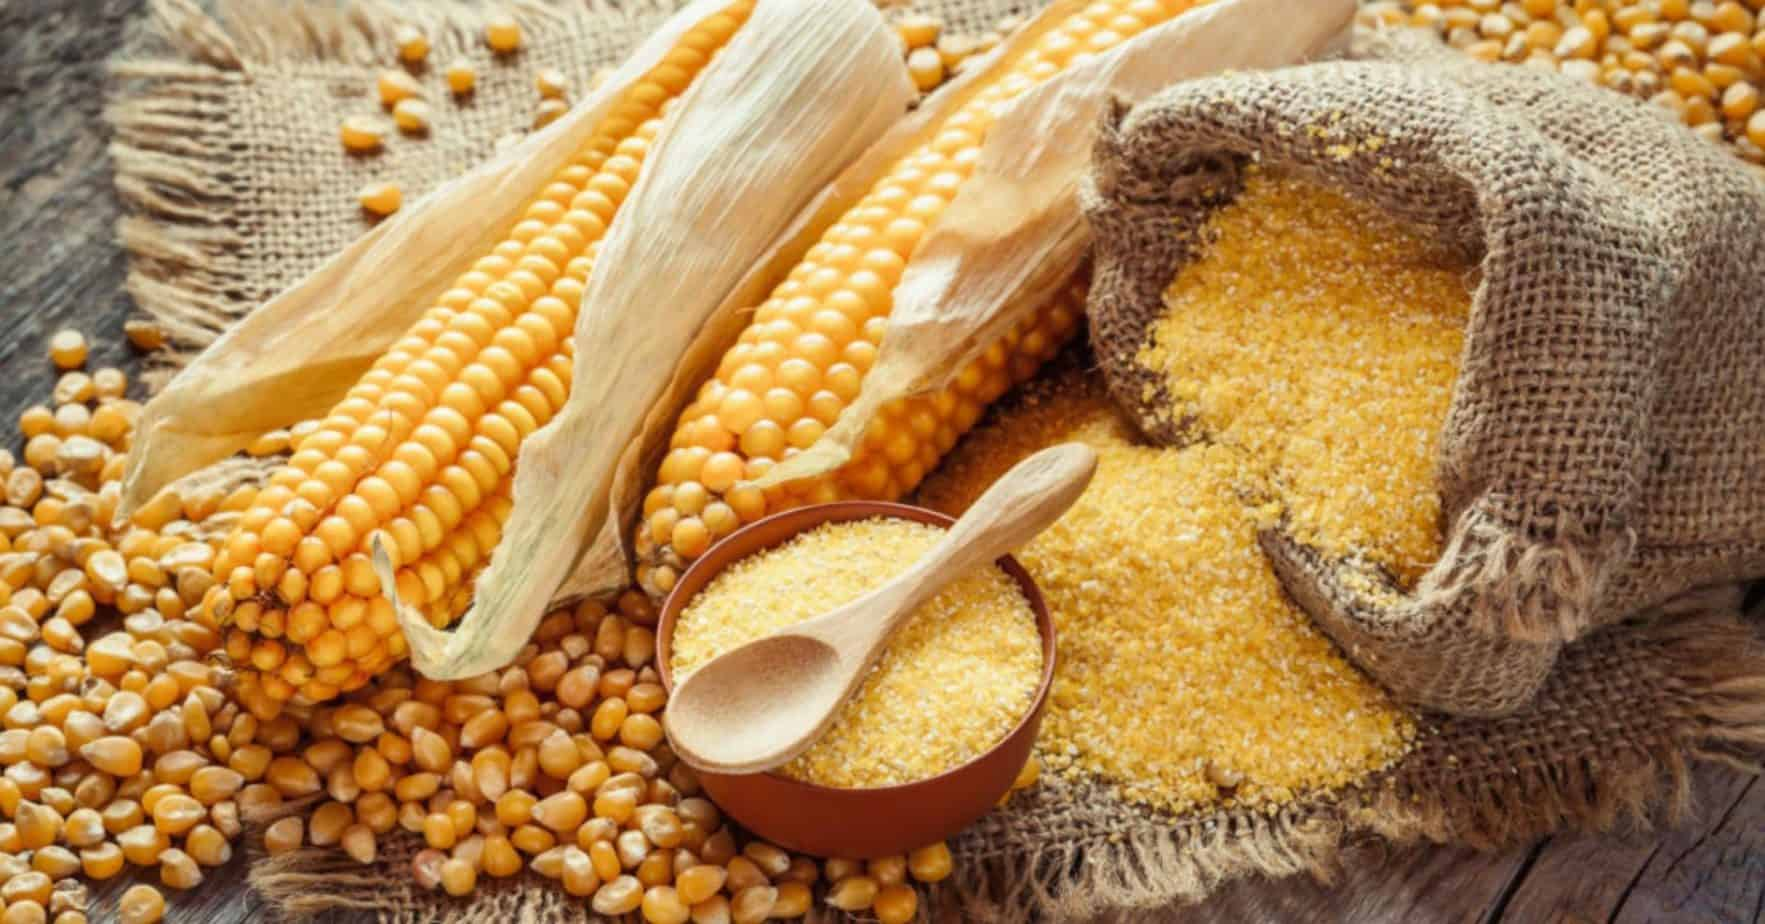 Did you know South African farmers produce enough maize per year to not only meet the local demand, but also supply many other African countries? Photo: Supplied/Food For Mzansi